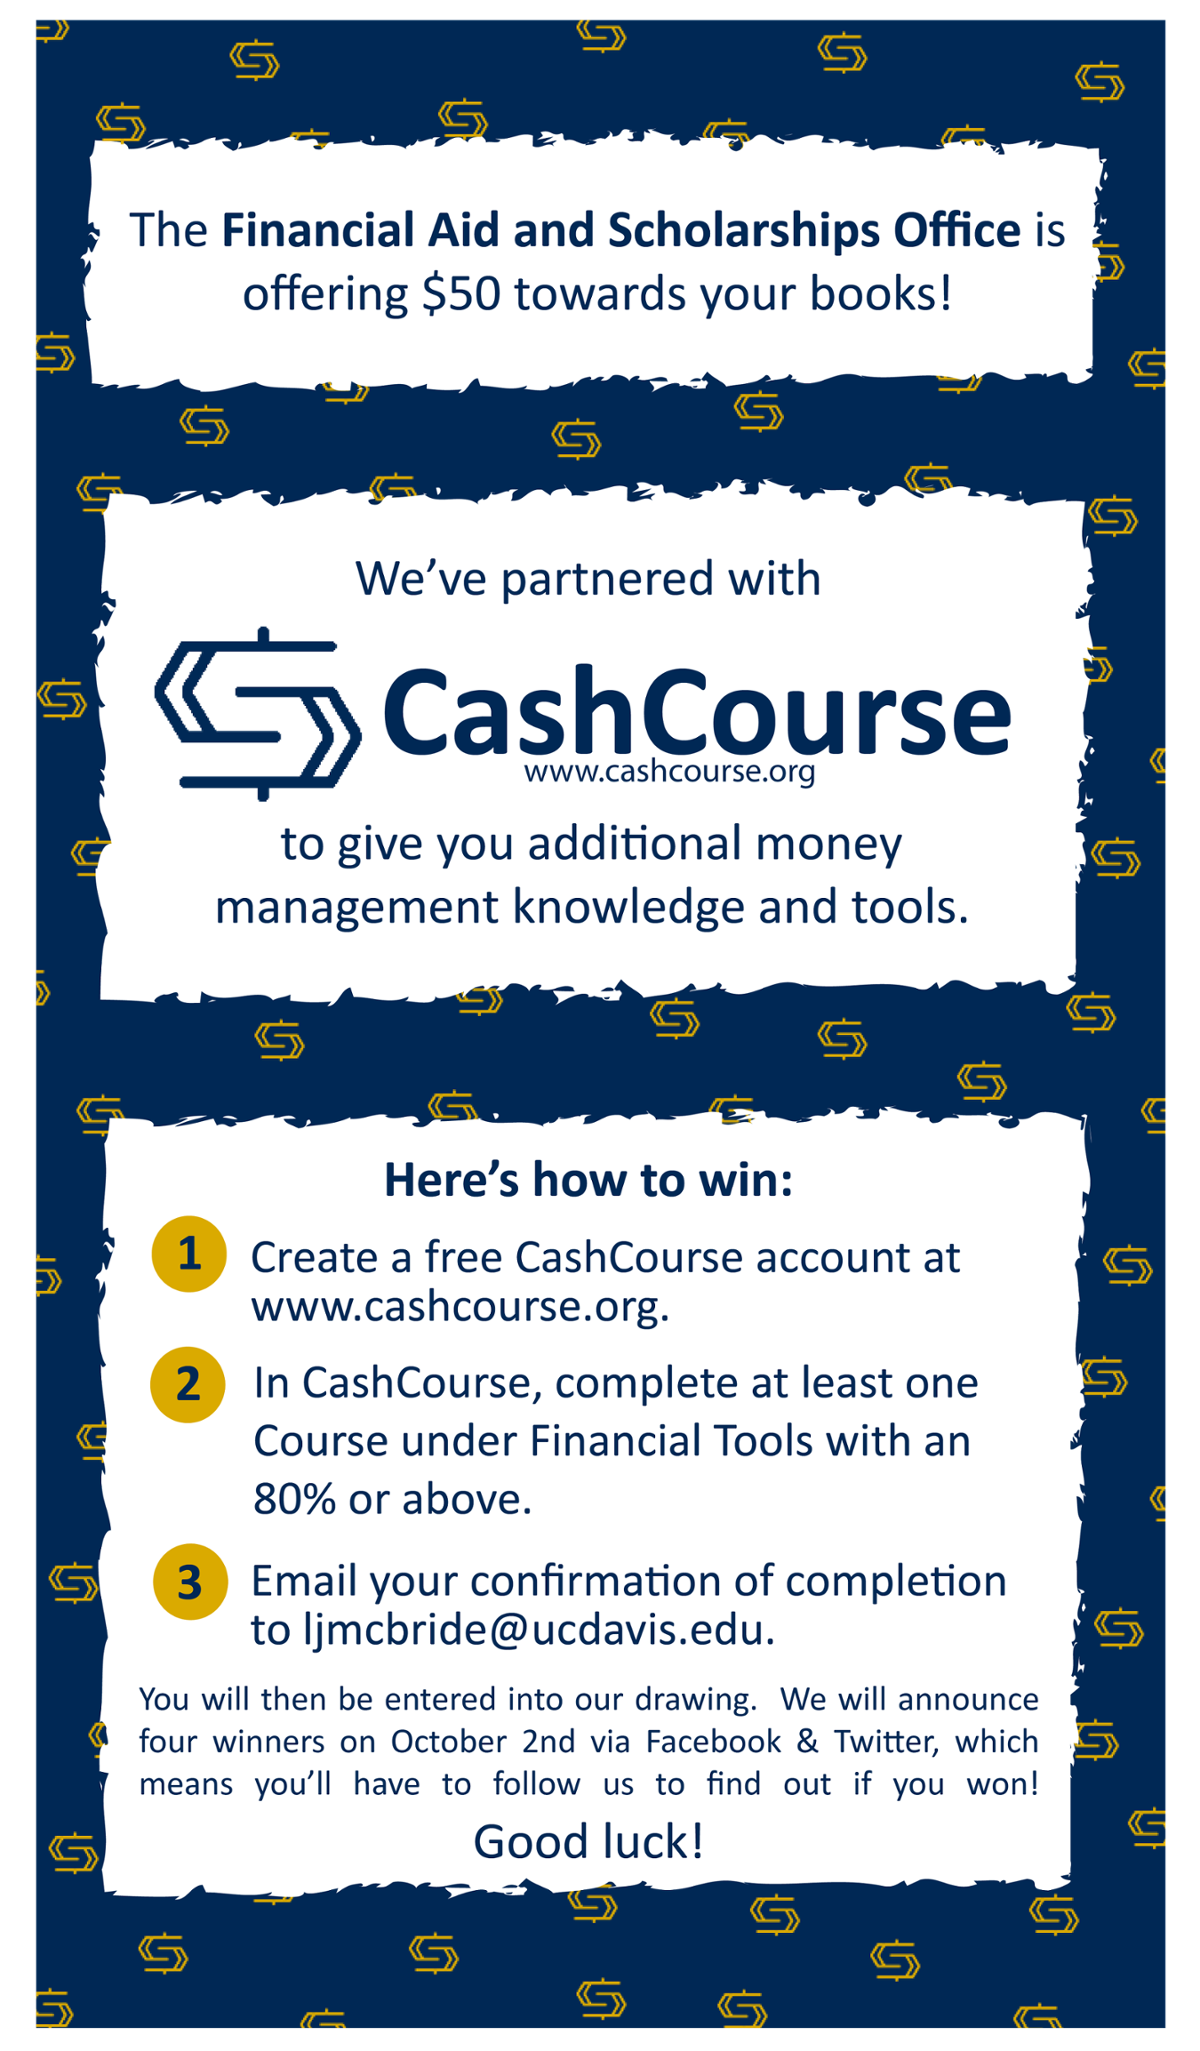 cashcourse giveaway